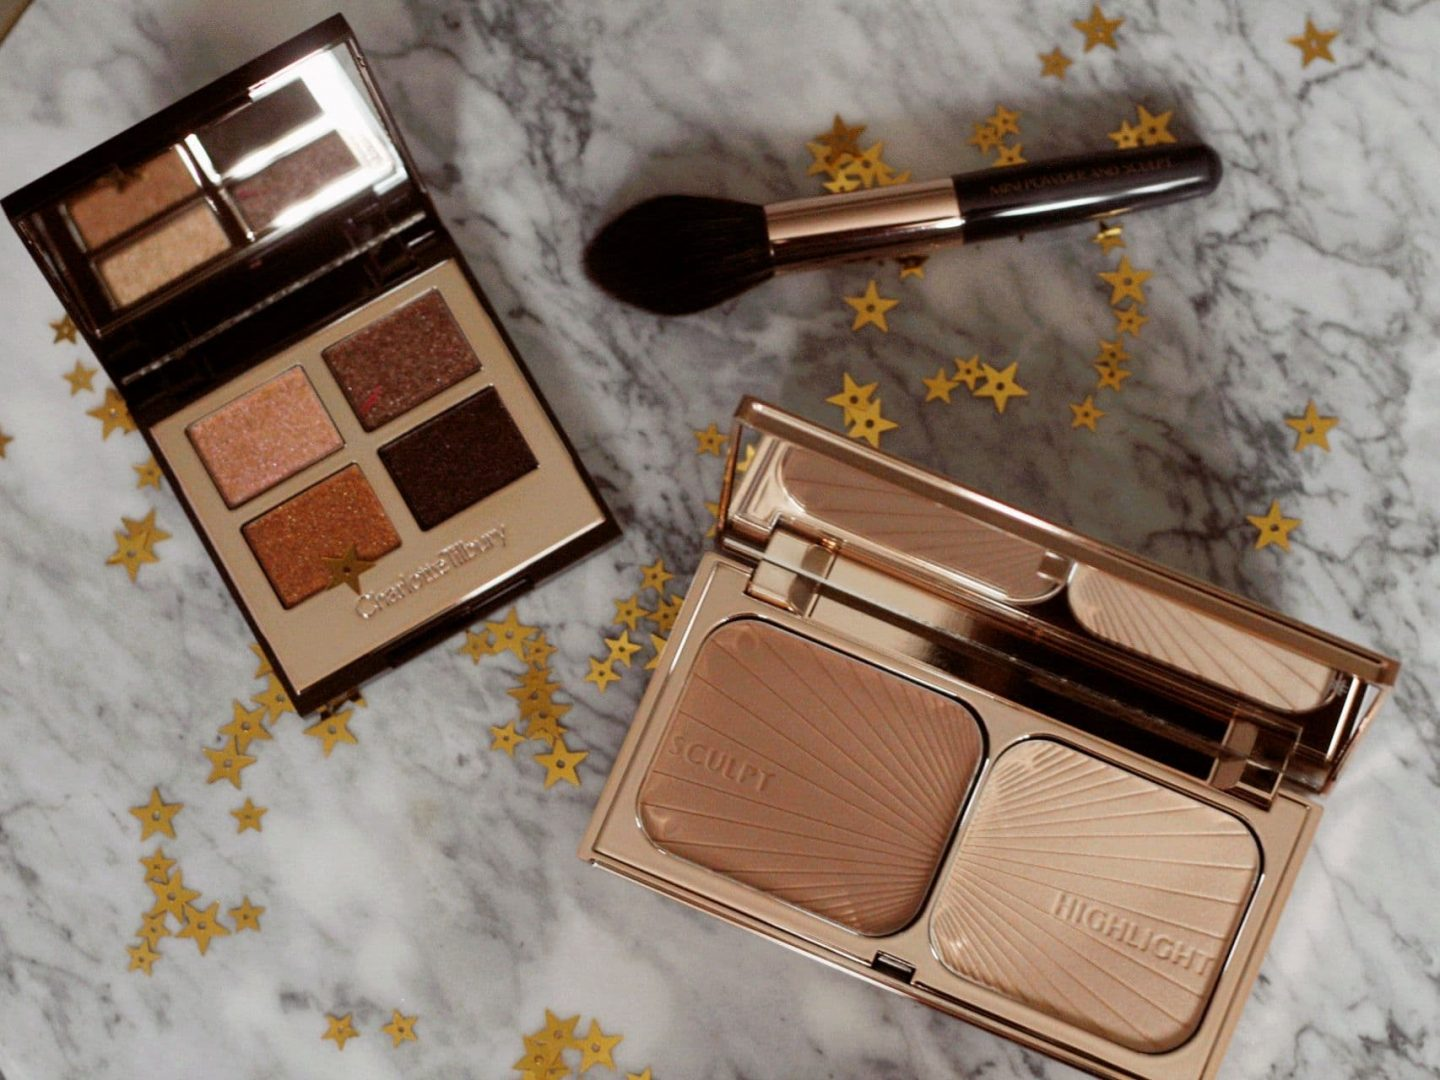 Charlotte Tilbury Filmstar Bronze and Glow Limited Edition